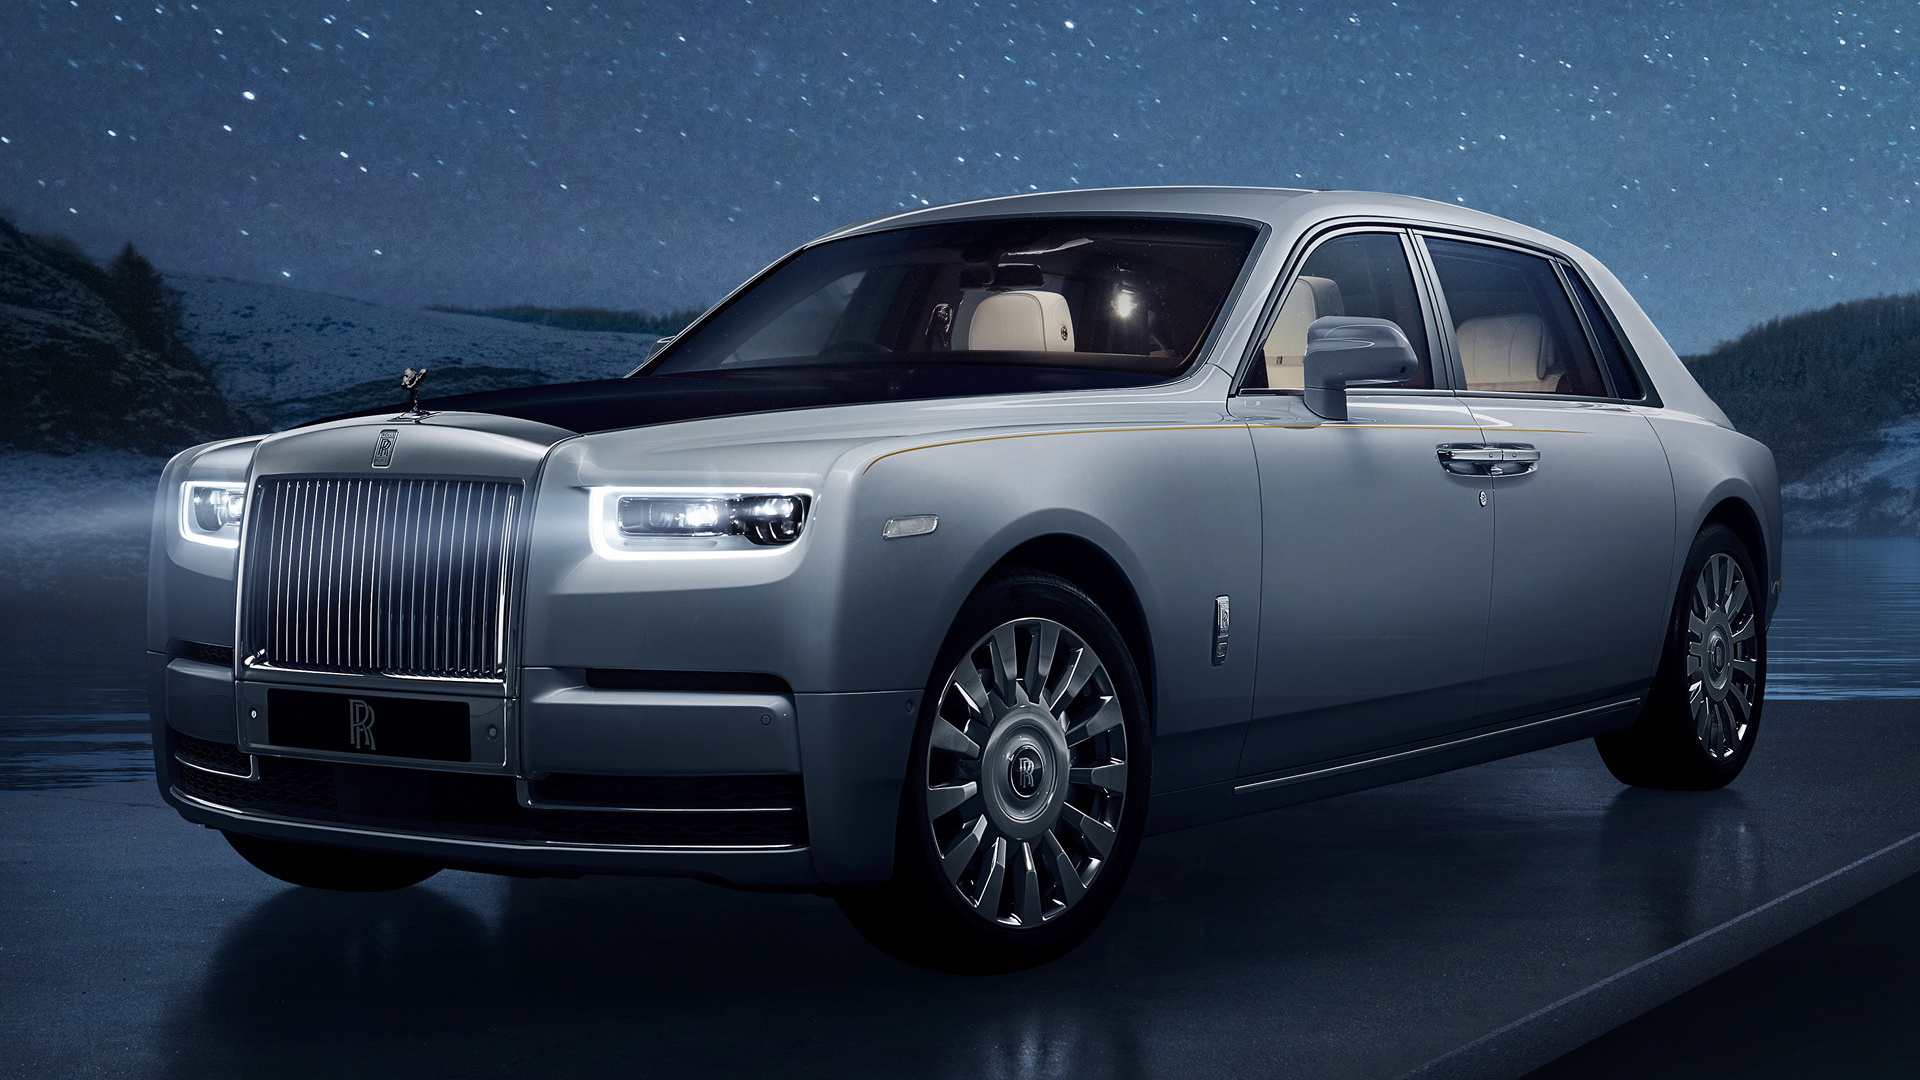 2019 Rolls-Royce Phantom Tranquillity (UK)